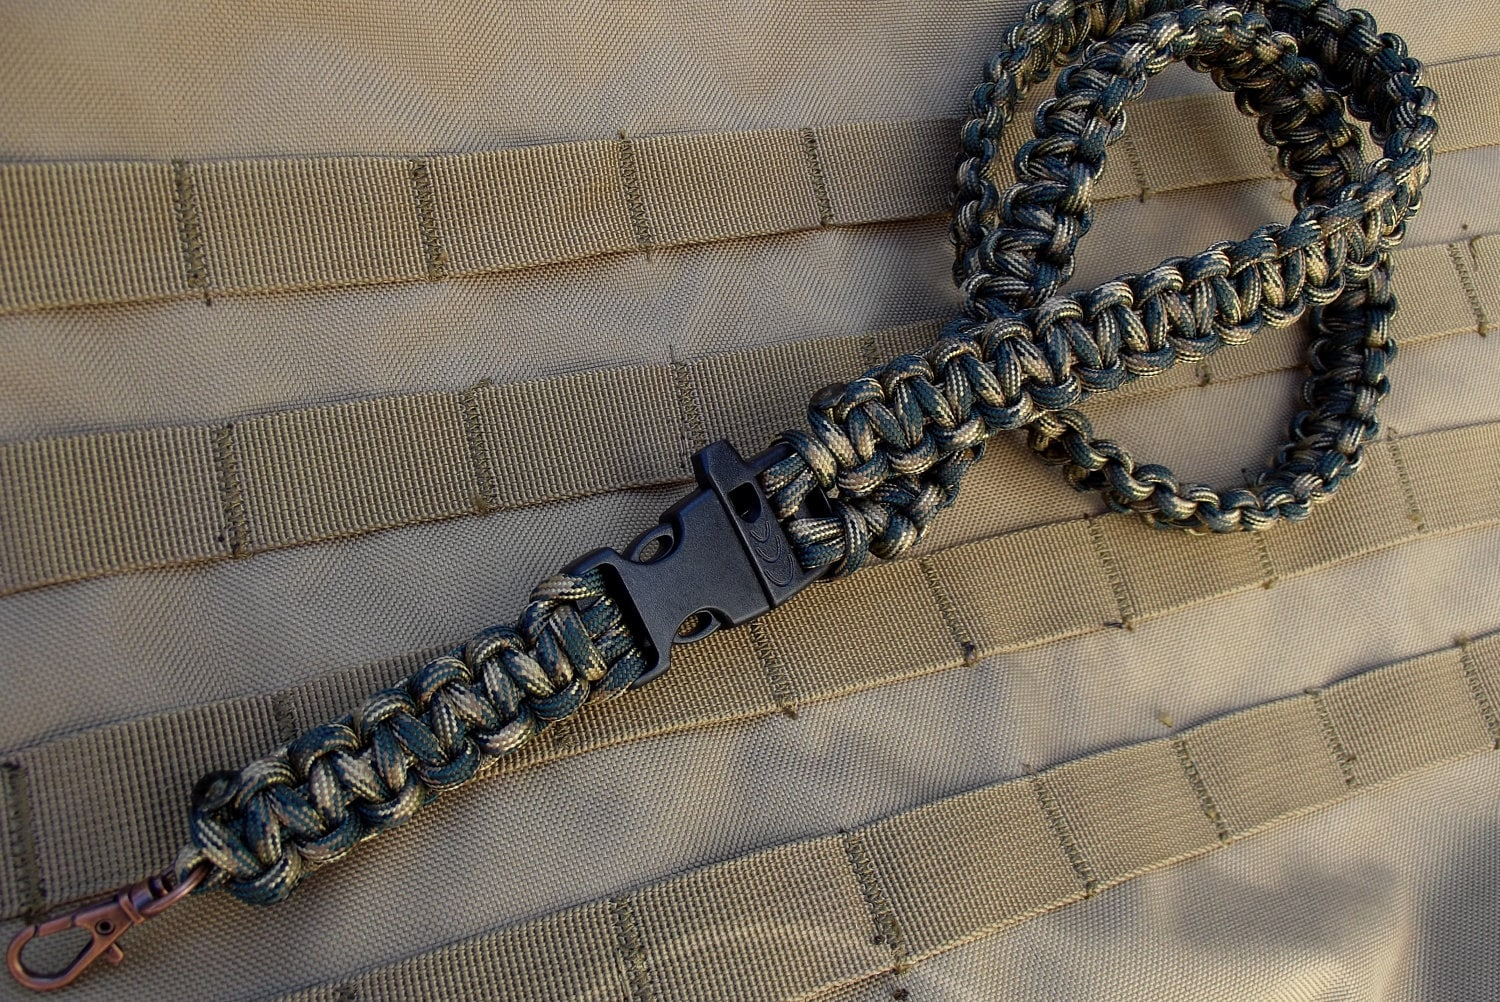 Camo Paracord Survival Lanyard With Whistle